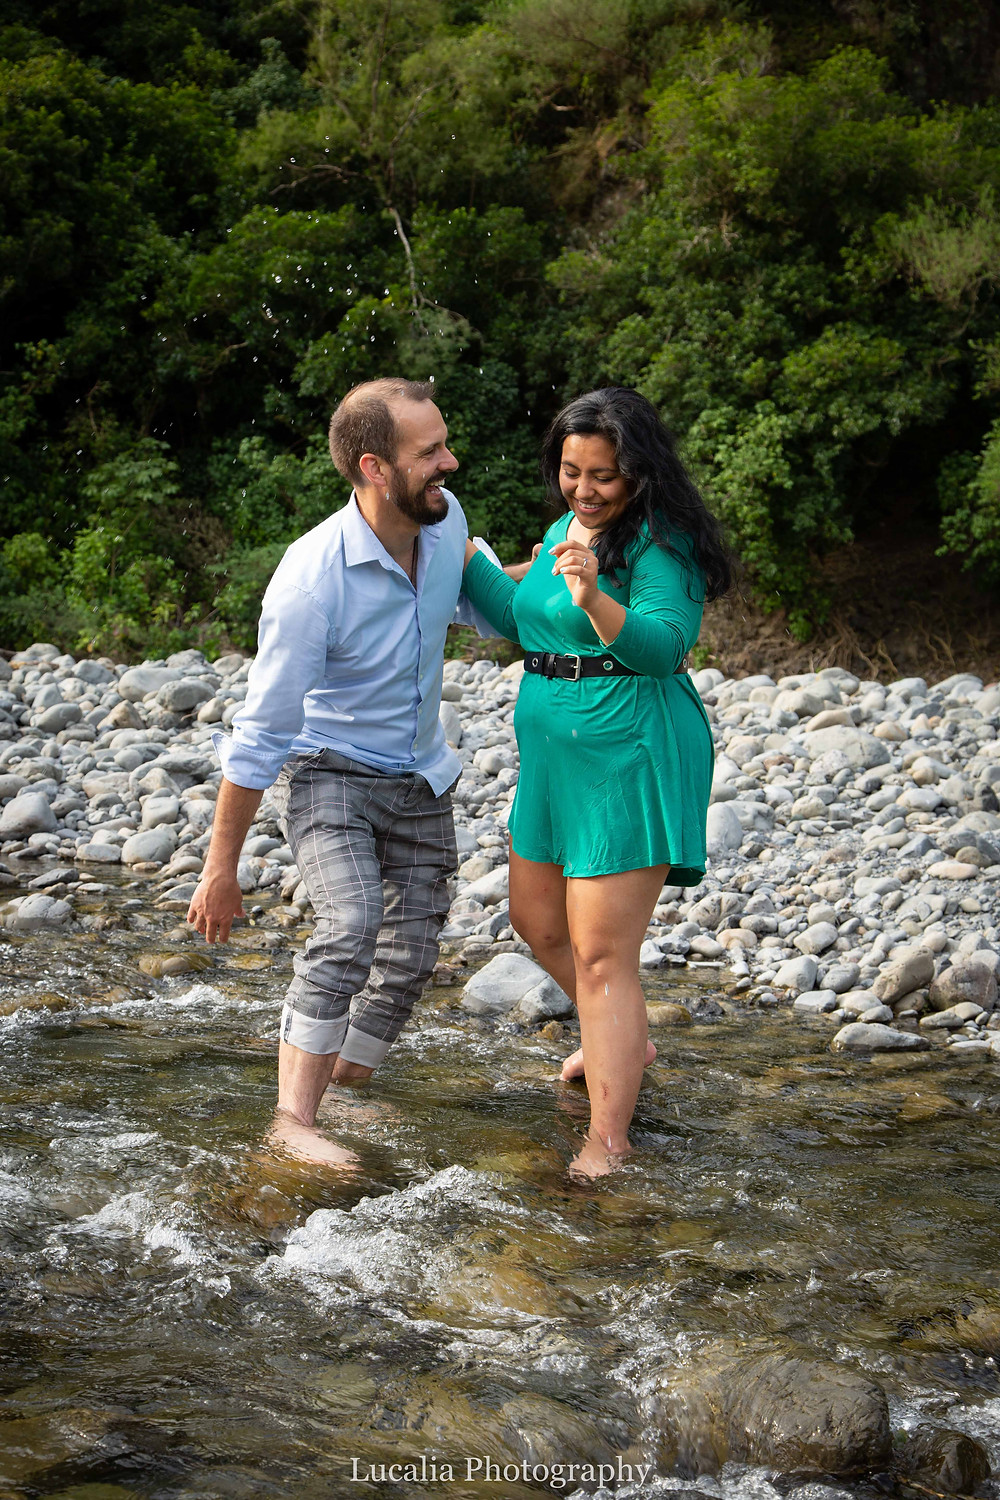 engaged couple having a water fight in a river, Wairarapa